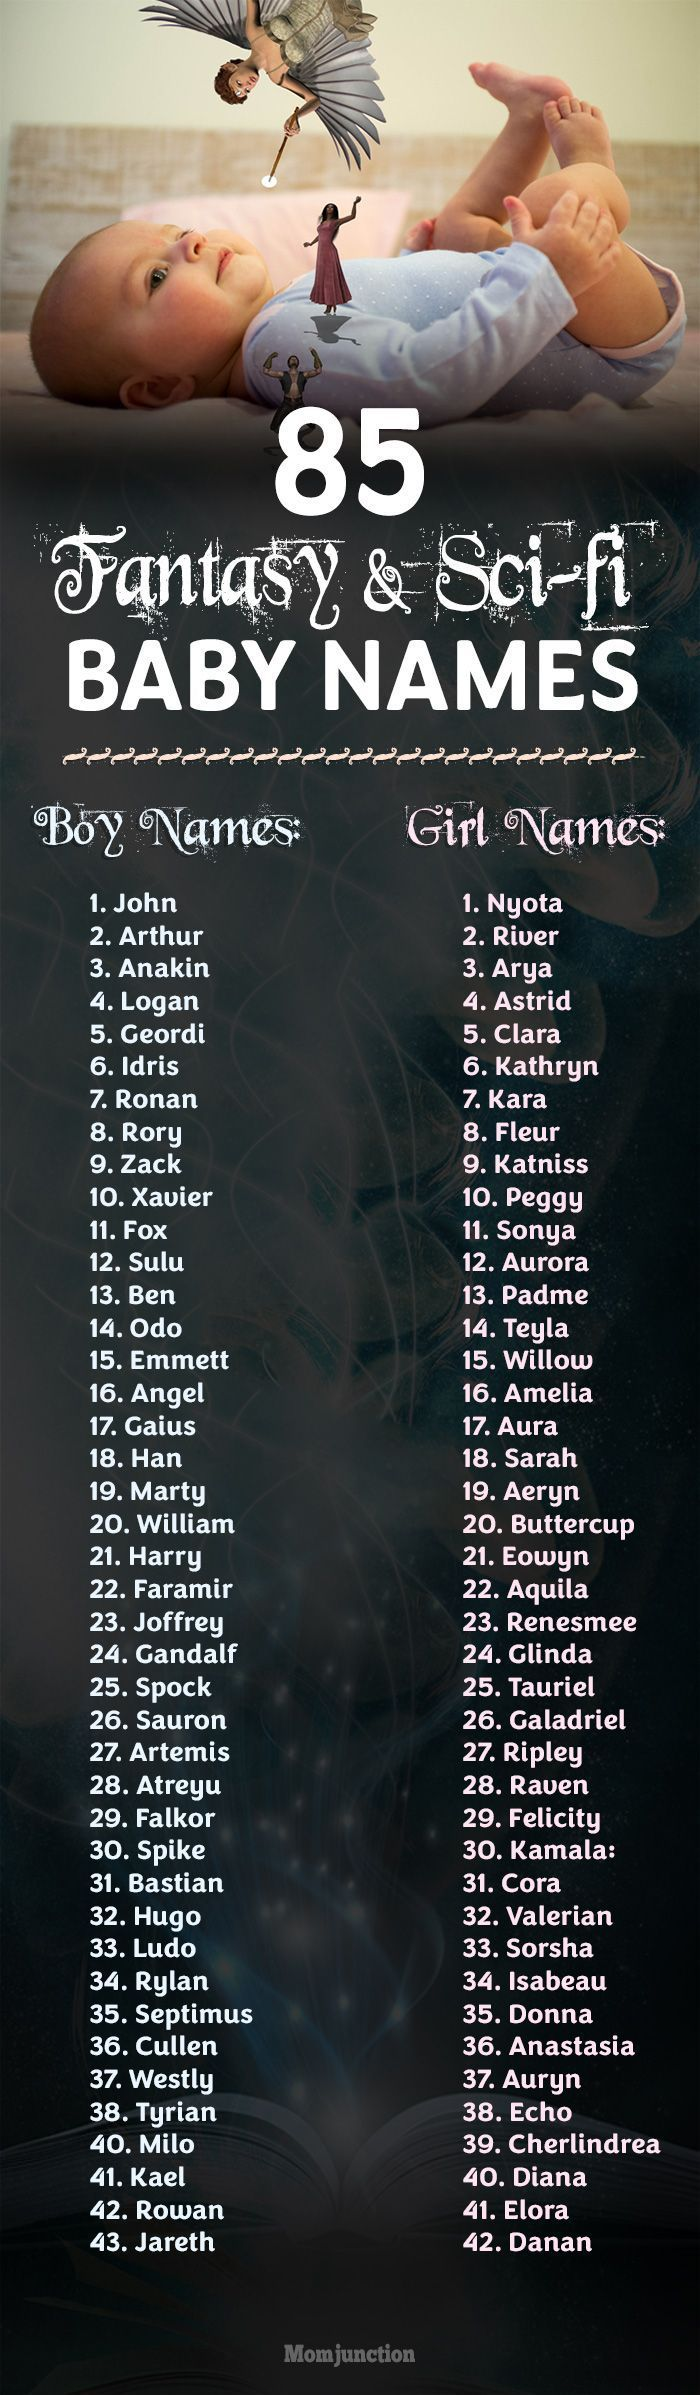 Best 25+ Fantasy names for girls ideas on Pinterest ...